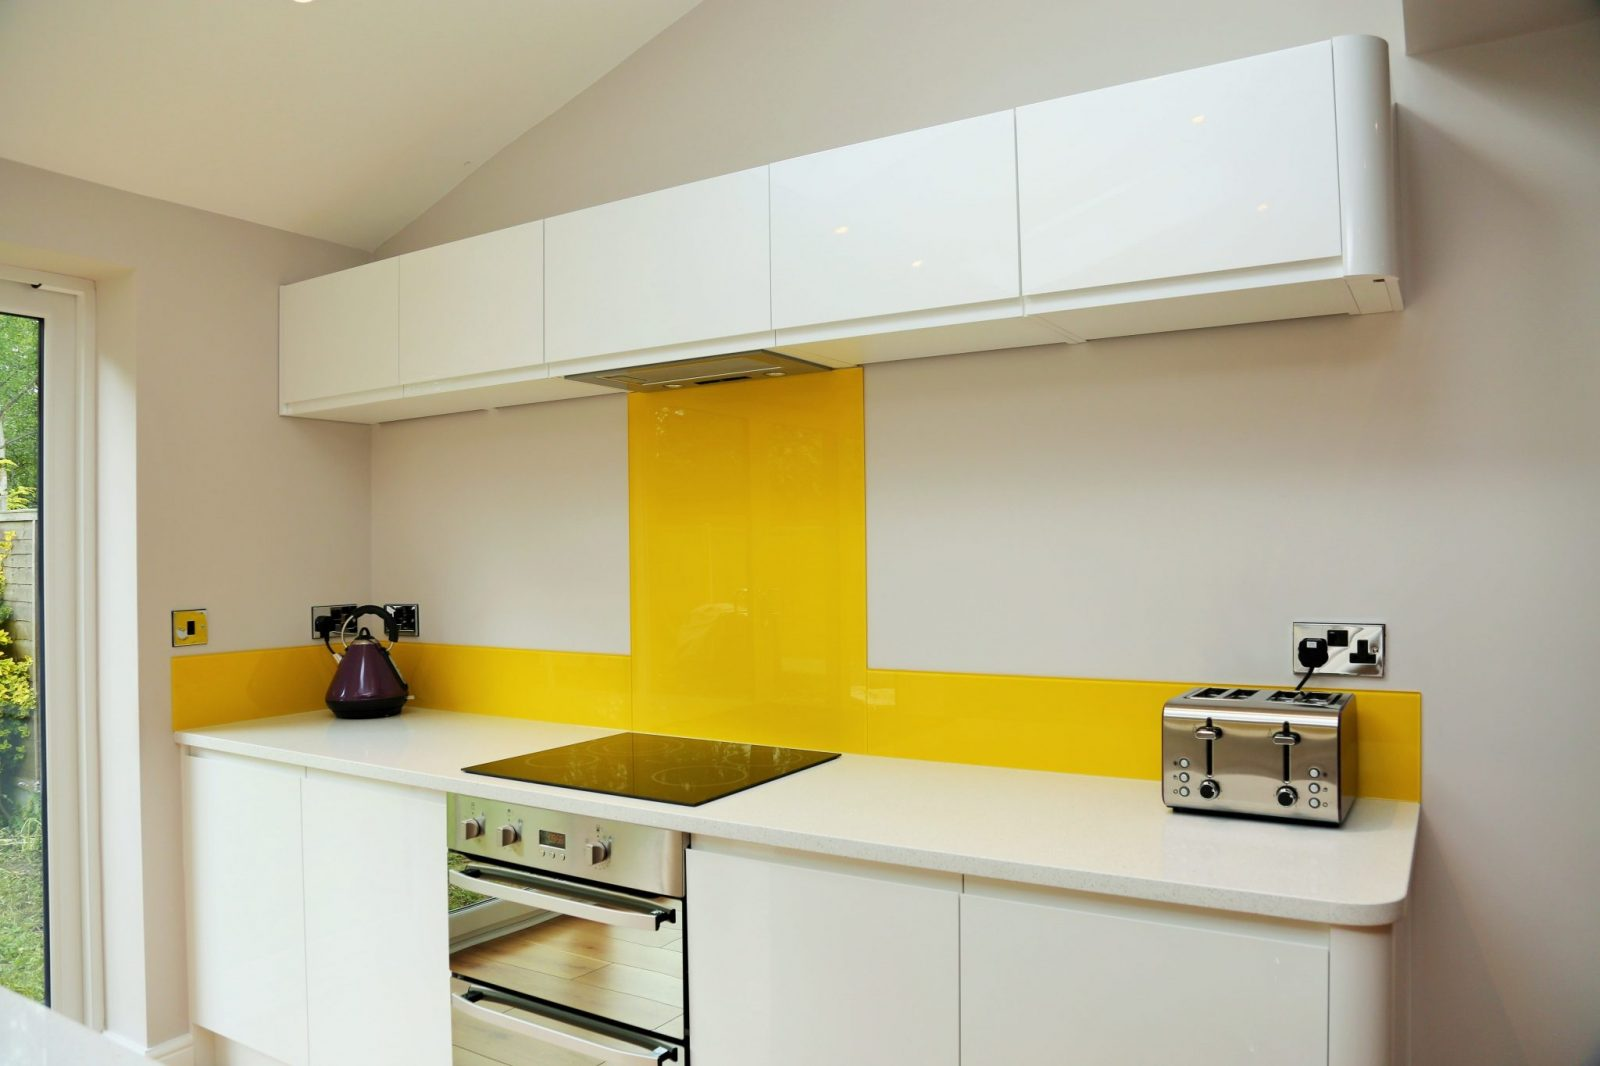 Yellow splashbacks for kitchens mityvac air operated fluid evacuator